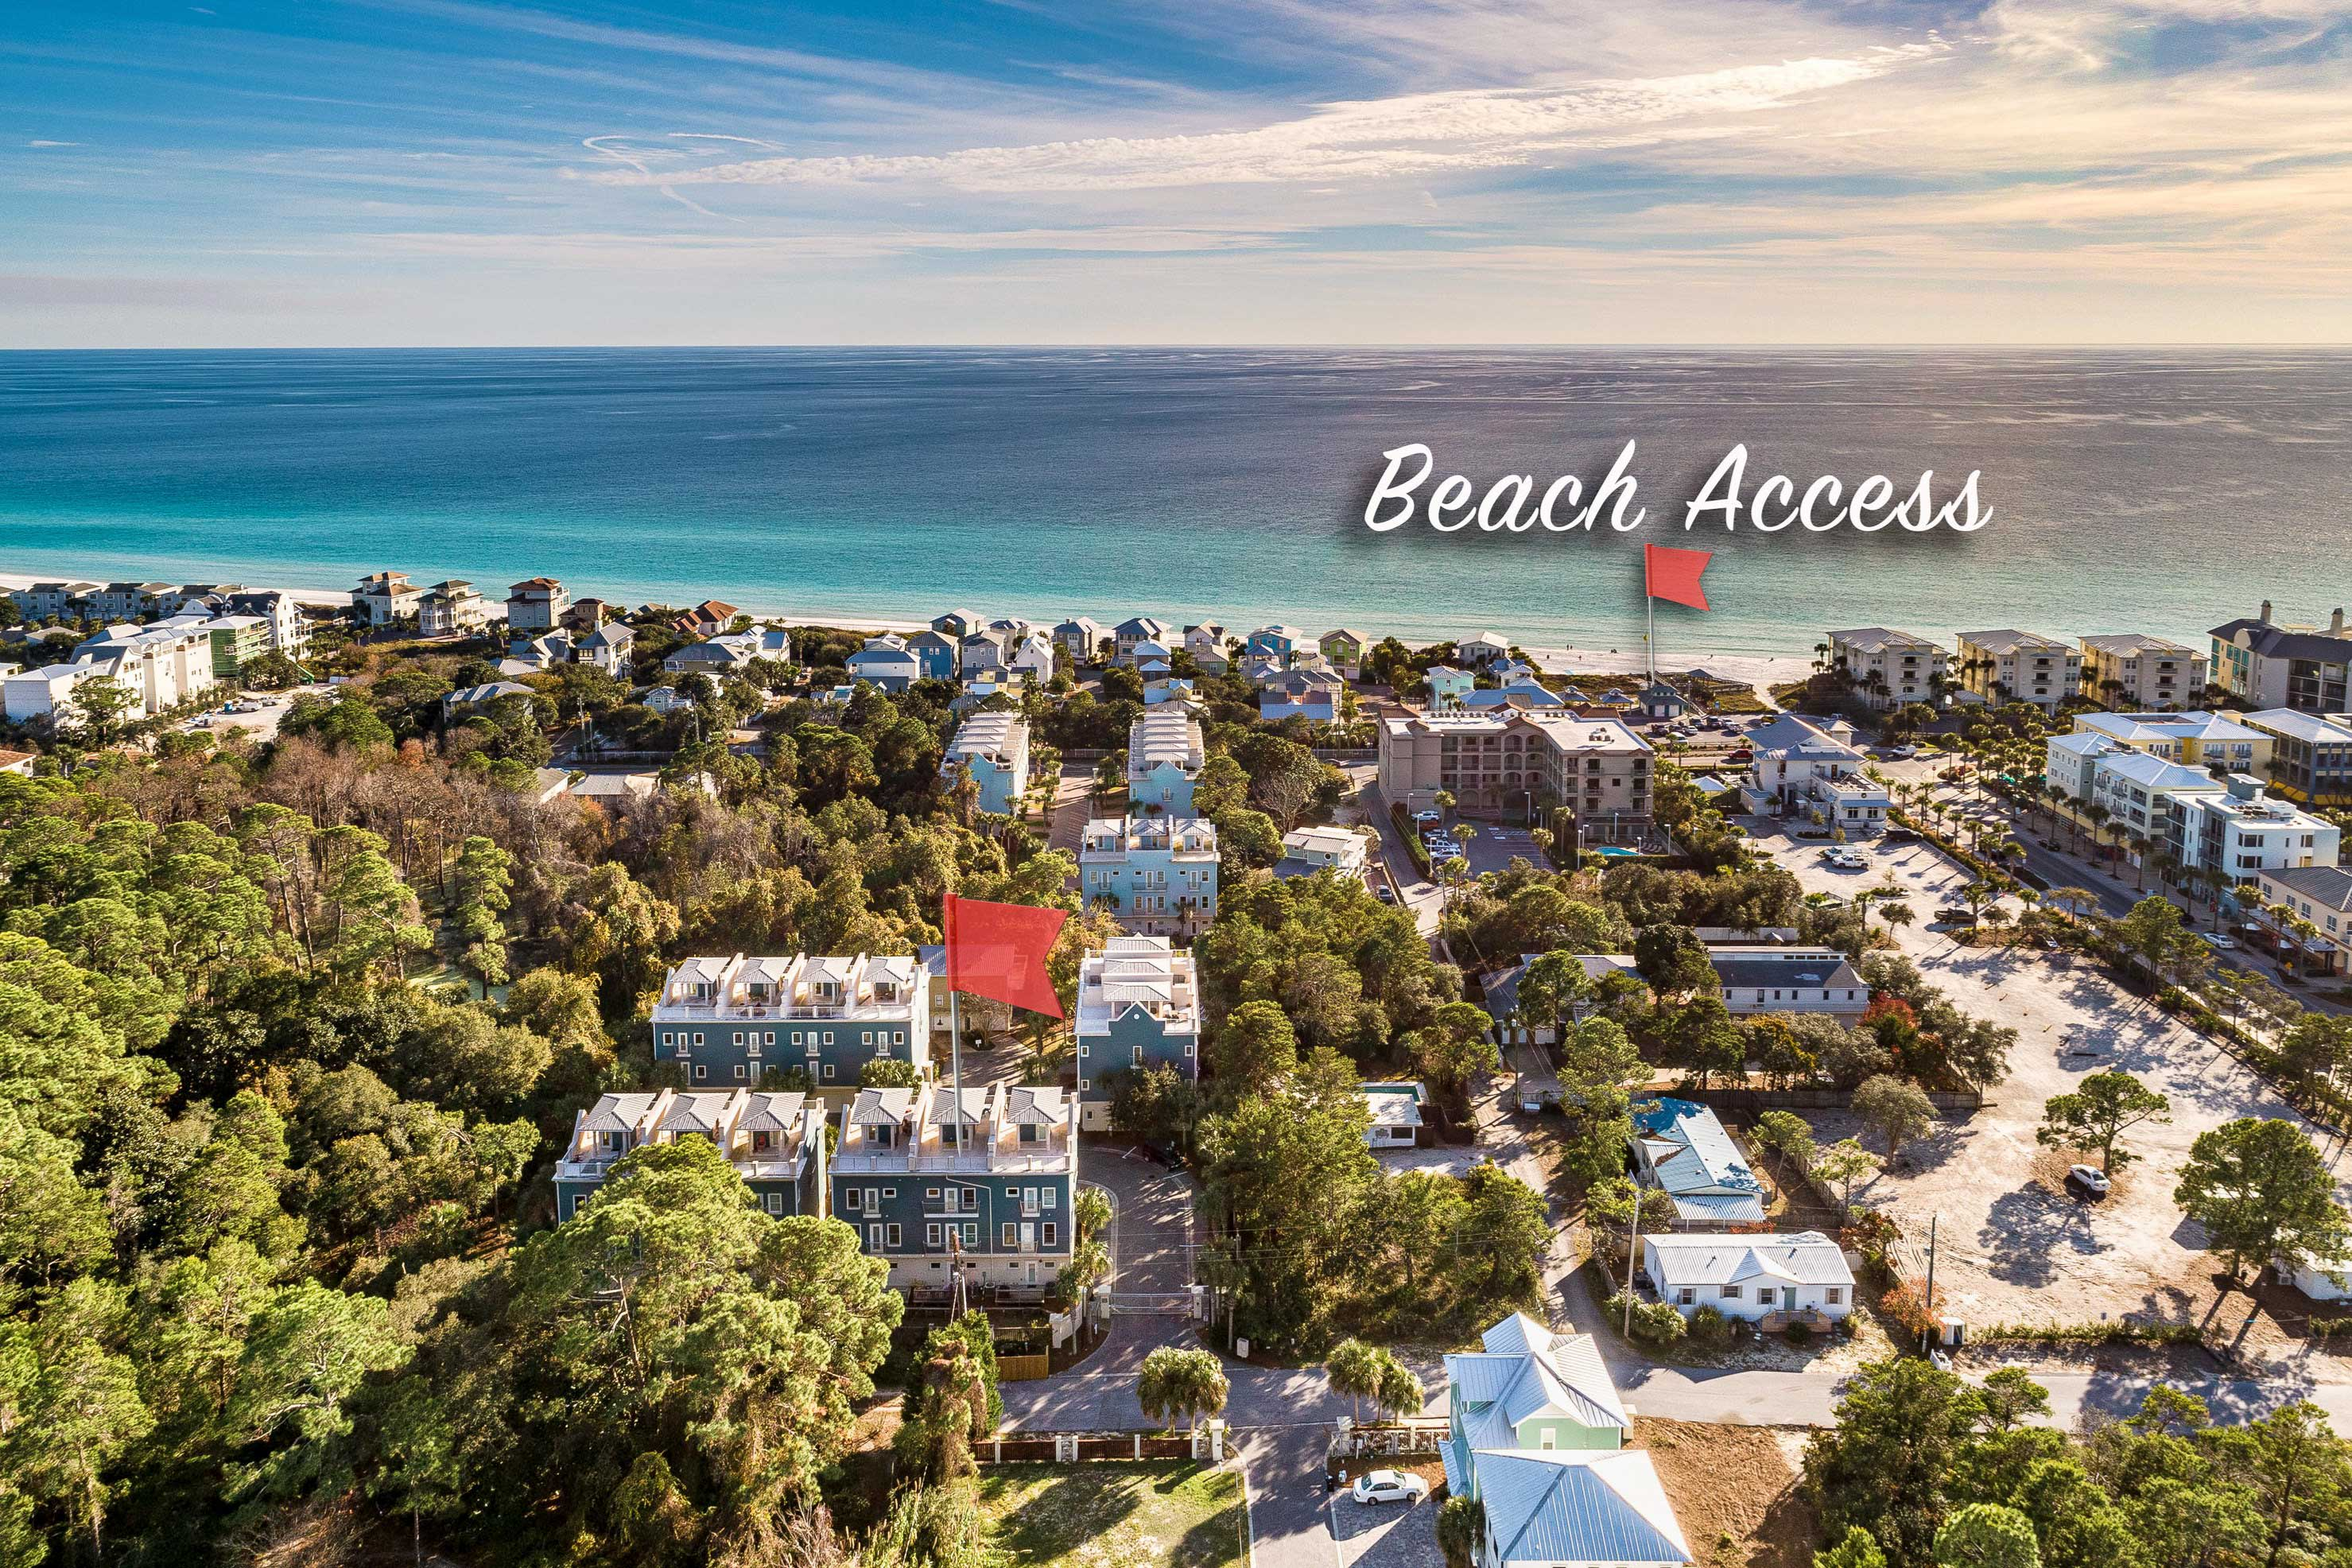 The beautiful beach is just steps away!